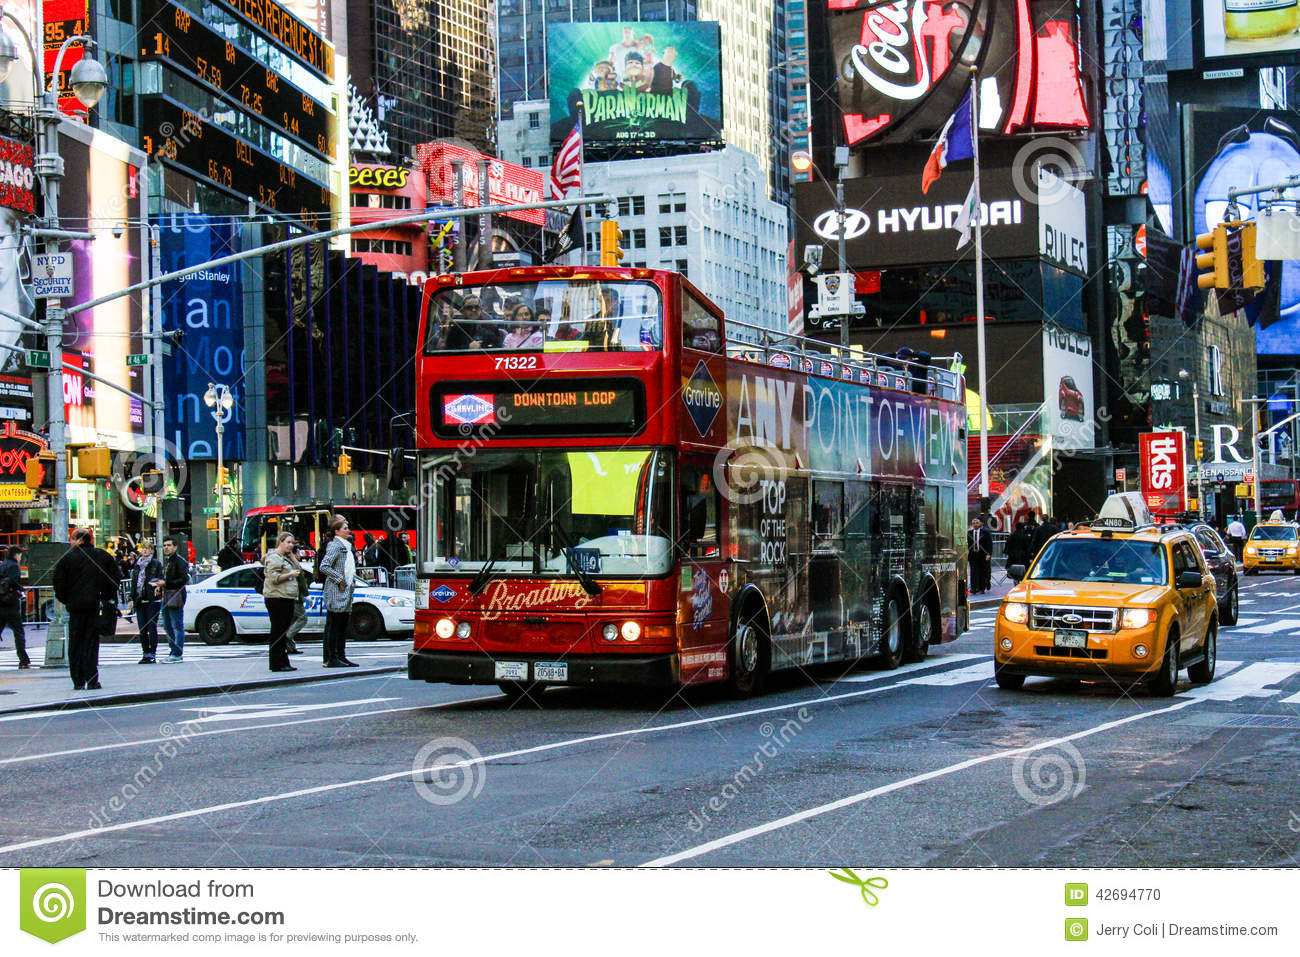 • Double-decker tour of the bright lights of NYC • Open air top deck that puts you in the center of the action • hour tour • See the iconic attractions lit up at night.